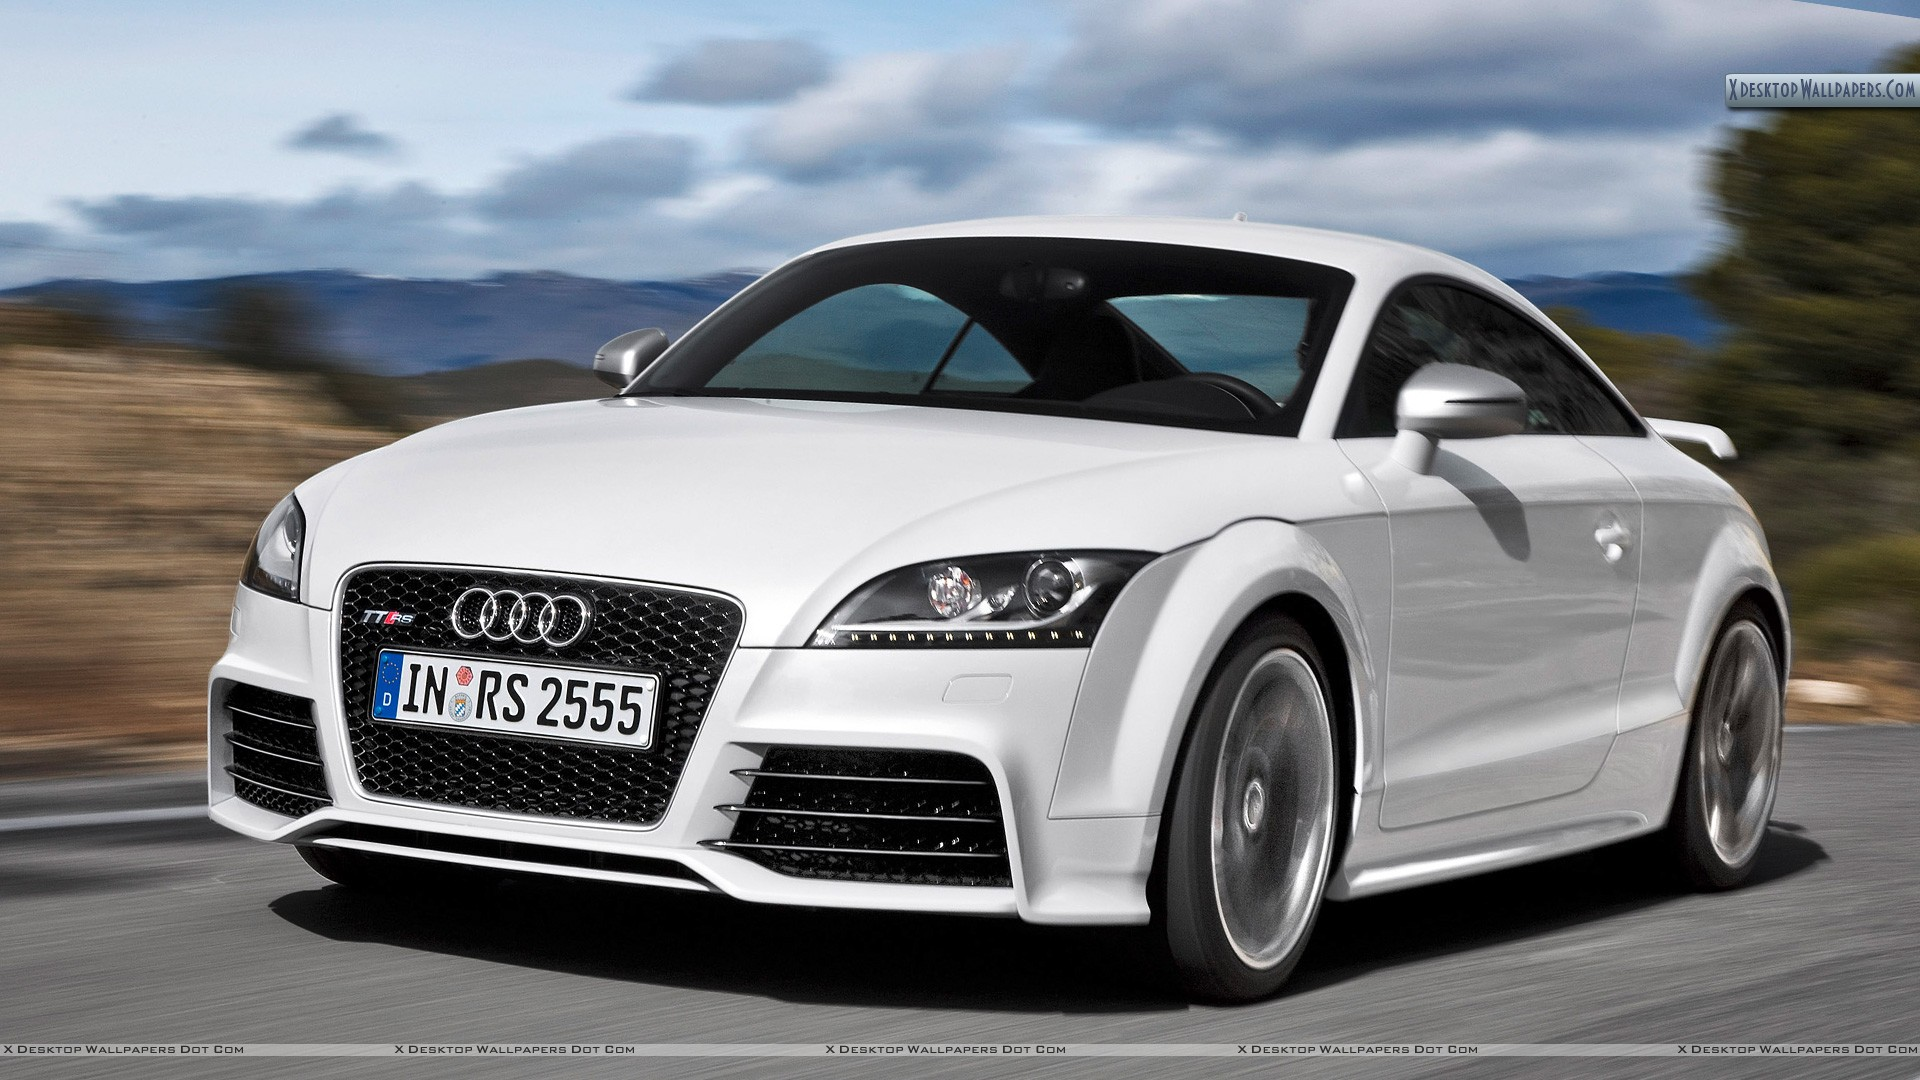 Audi TT RS Race Car